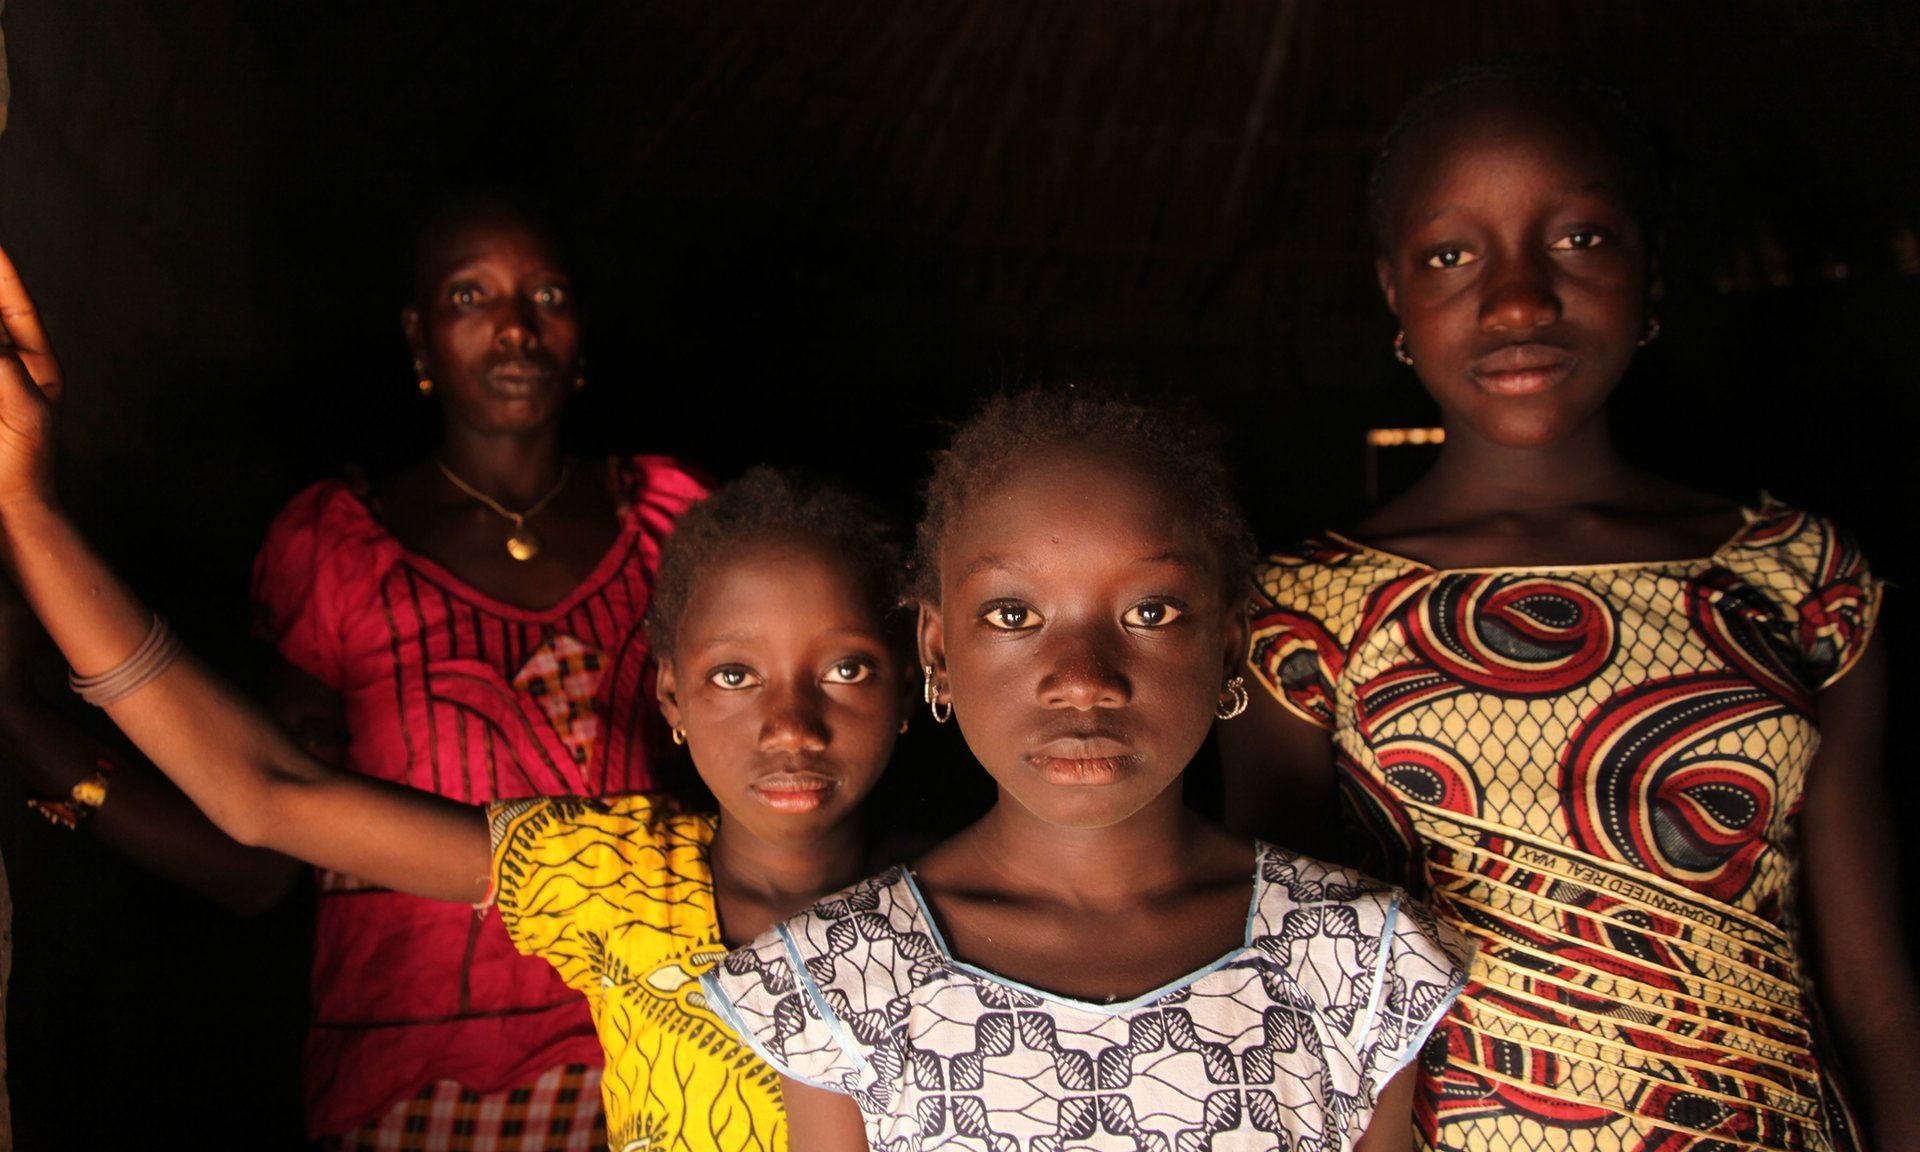 A woman and her daughters in the village of Cambadju in Bafata region, Guinea-Bissau, which has been on the UN's list of least developed countries since 1981. Photograph: Unicef/Lemoyne/EPA